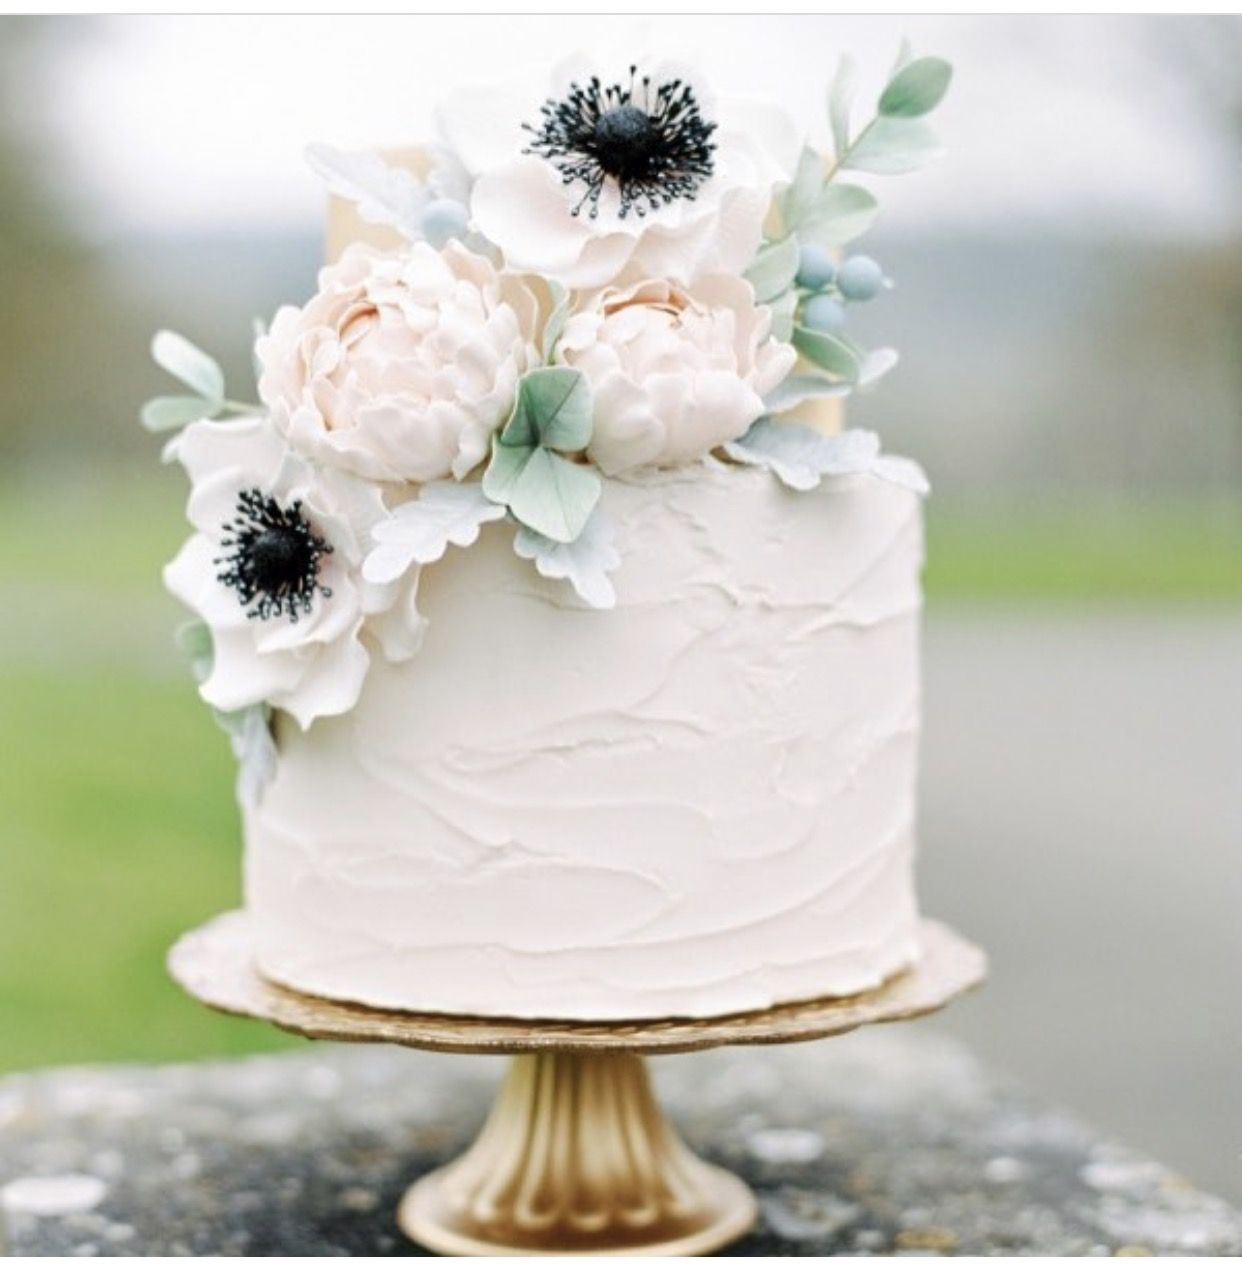 dillcoleman | Getting hitched! | Pinterest | Wedding cake, Cake and ...